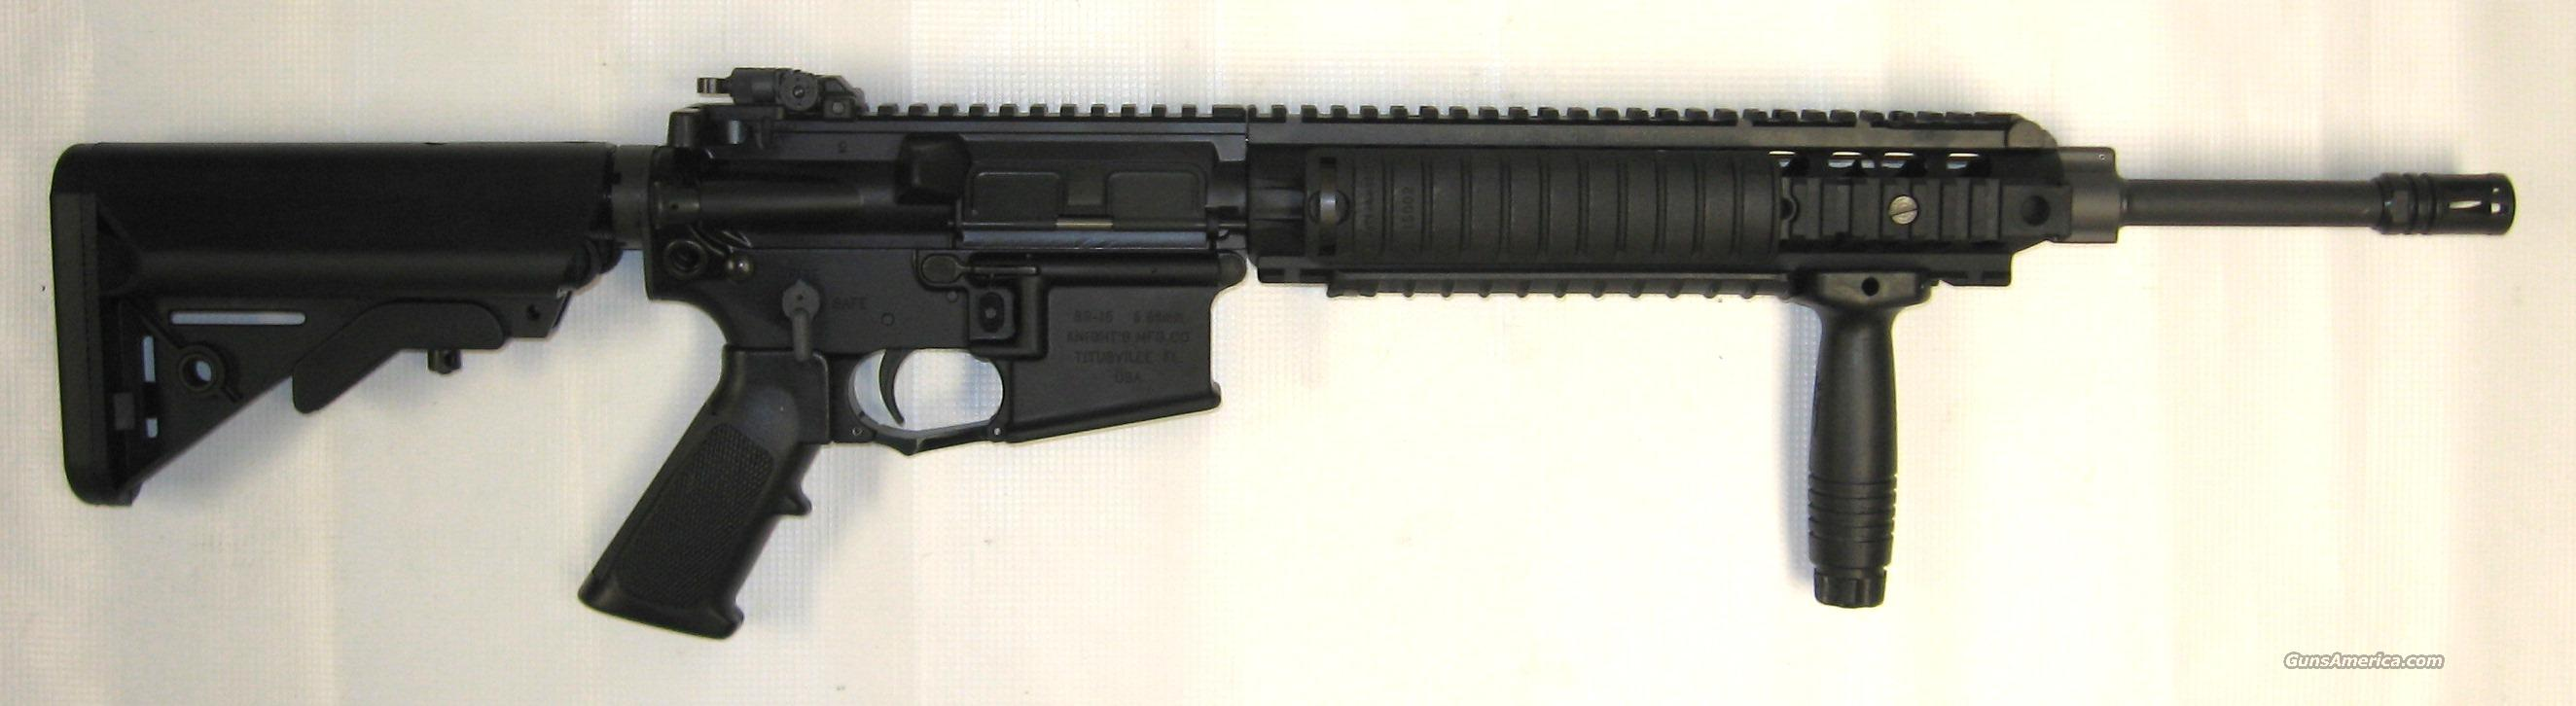 Knights Manufacturing Co. SR-15  Guns > Rifles > Knight's Manufacturing Rifles